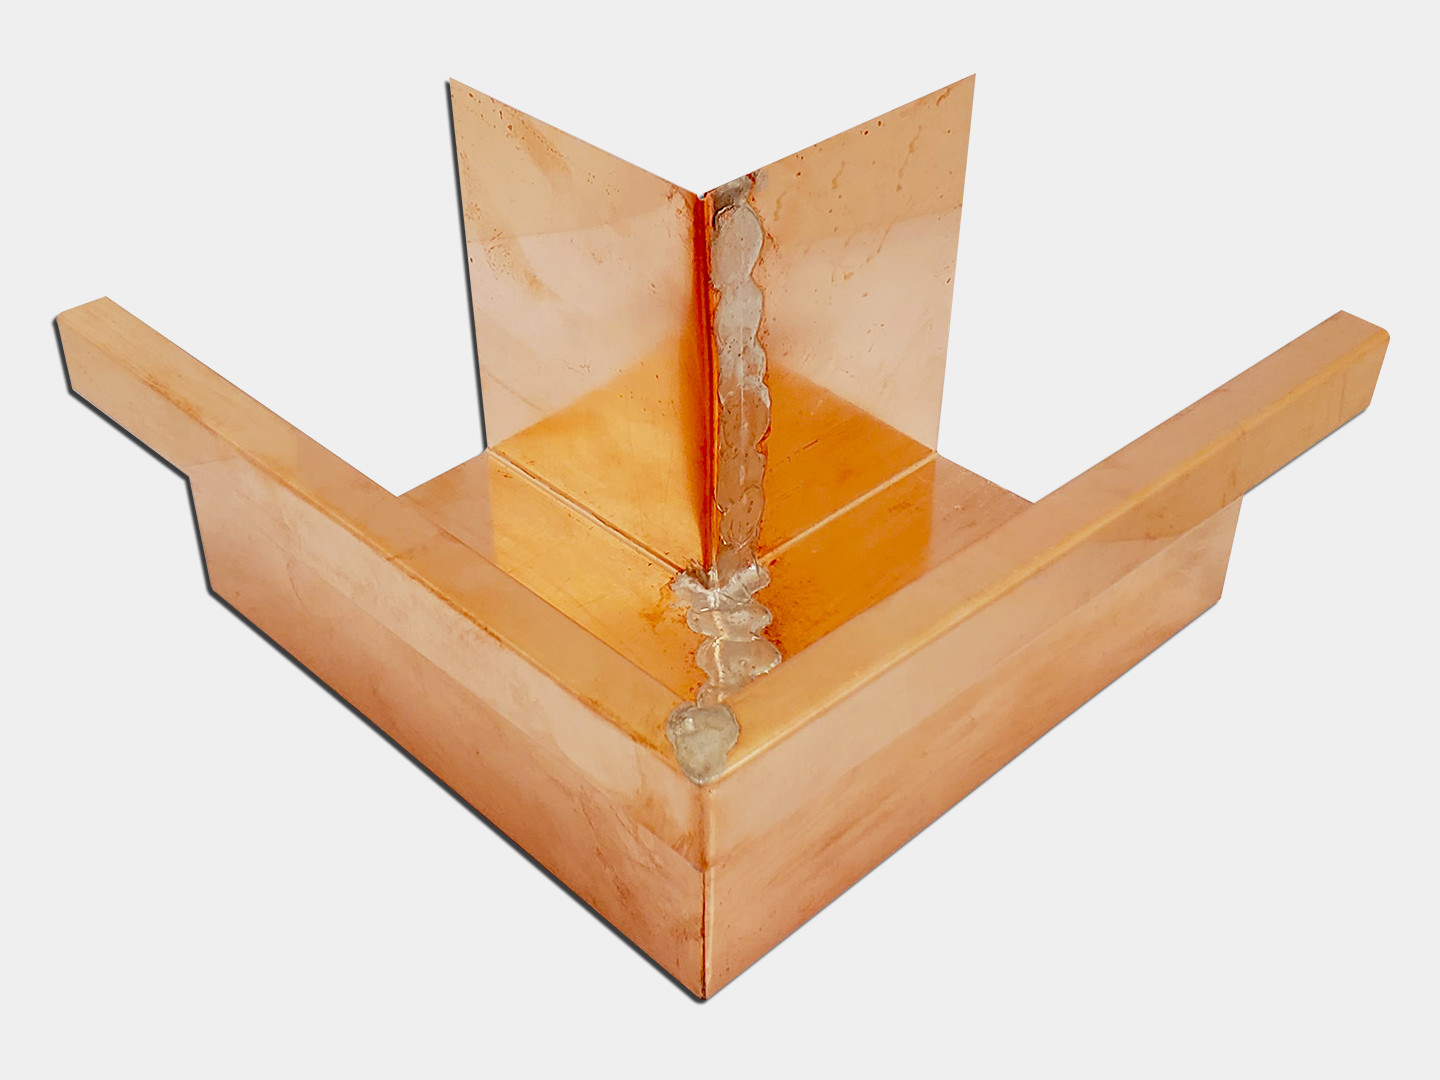 Commercial copper box gutter miter